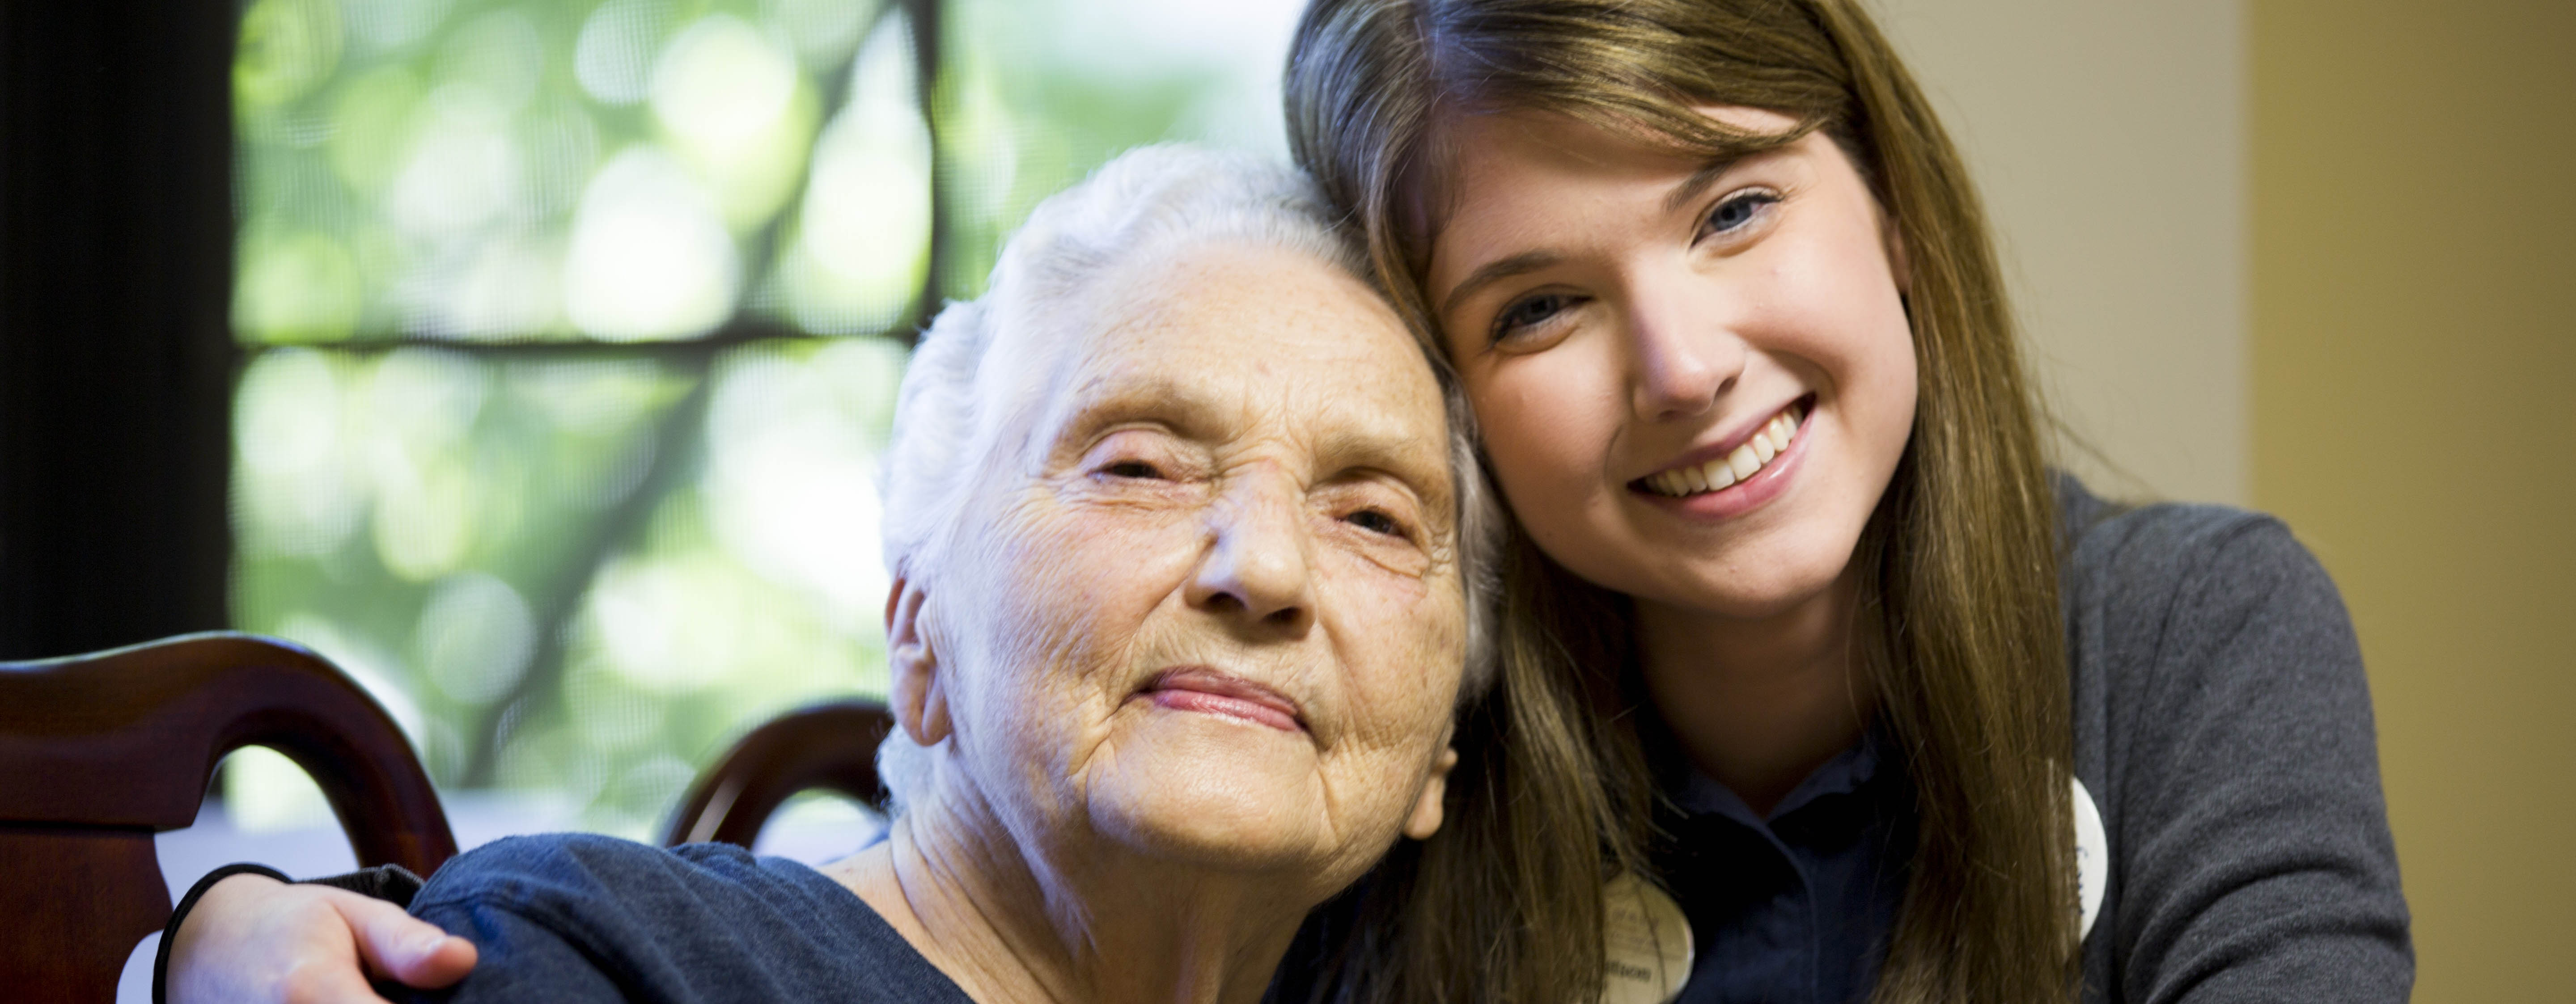 grand daughter and elderly grandmother hugging and smiling